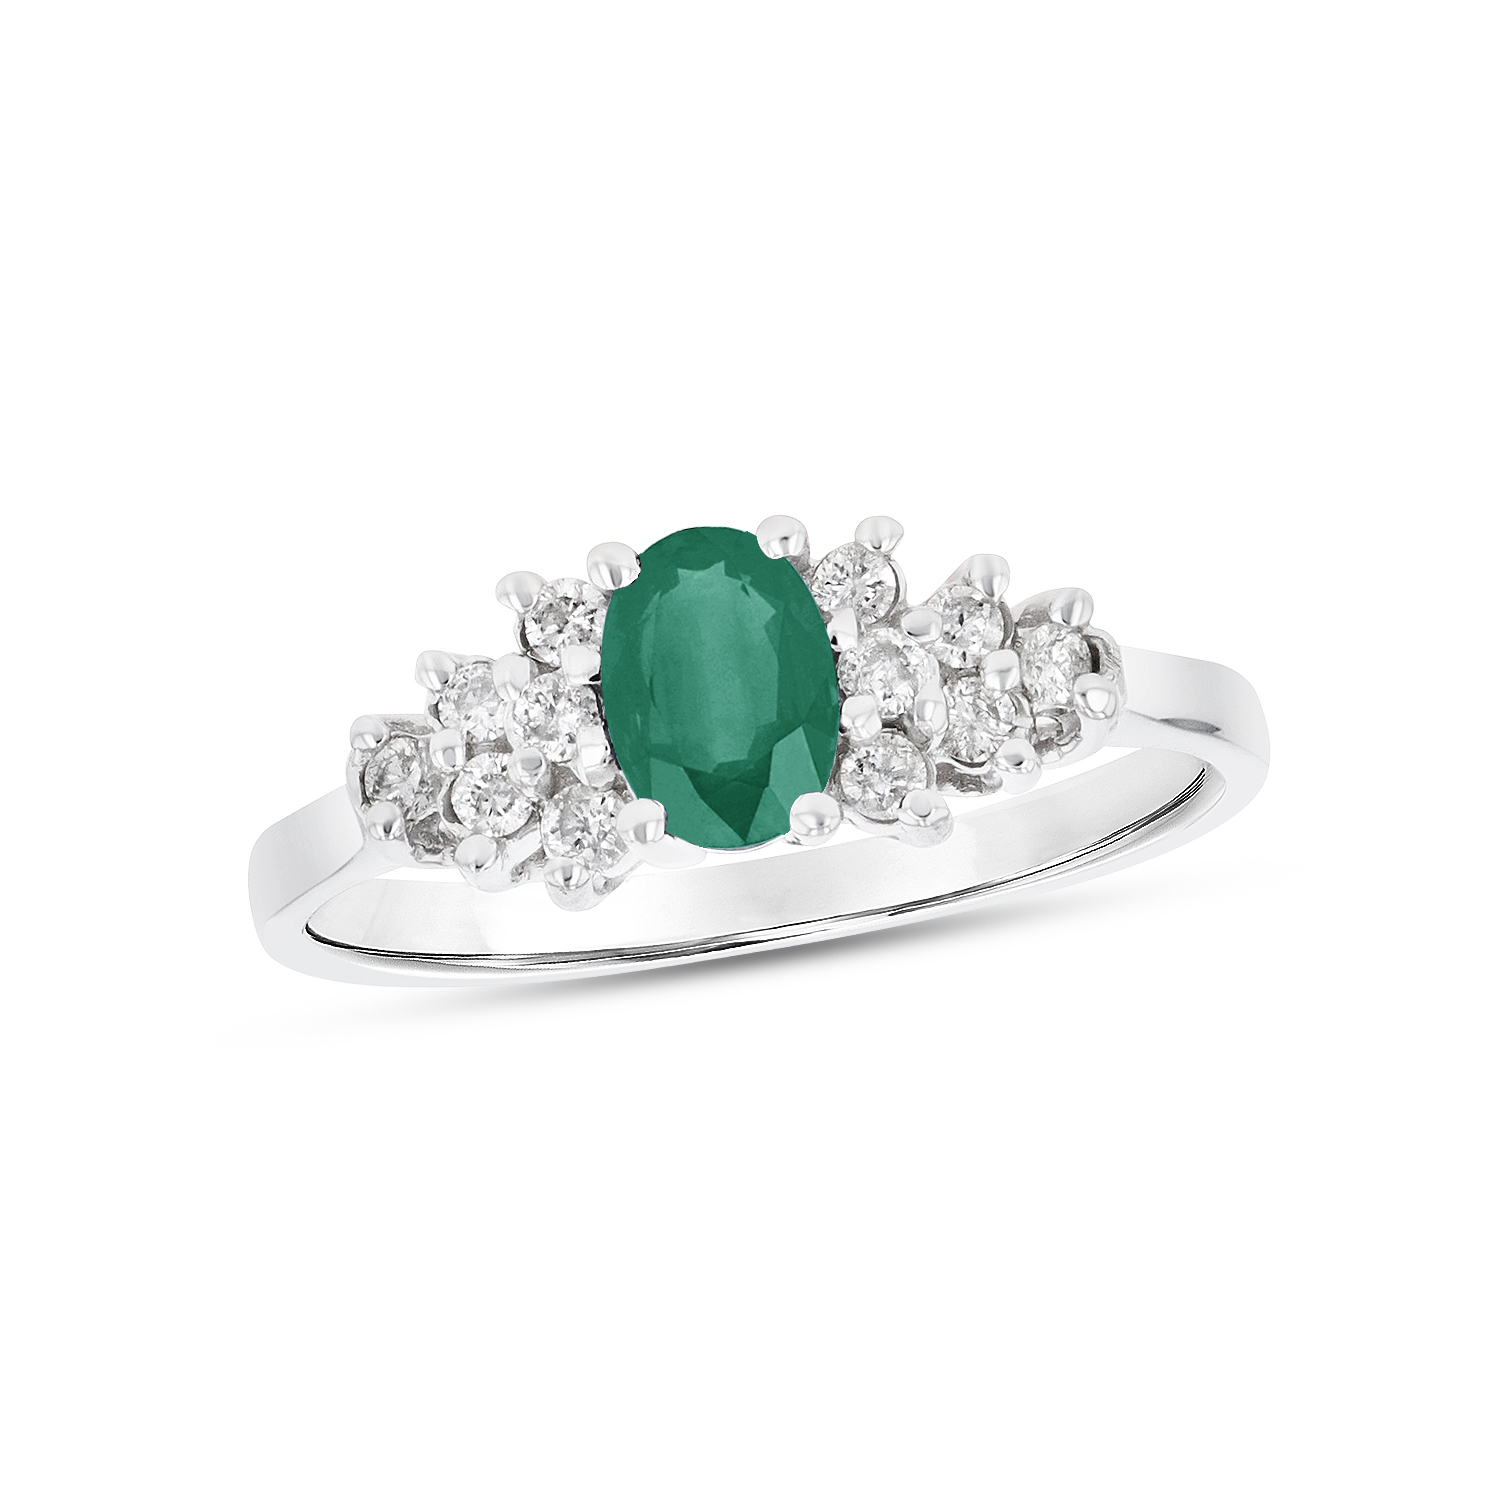 View 0.60ctw Diamond and Emerald Ring in 14k White Gold